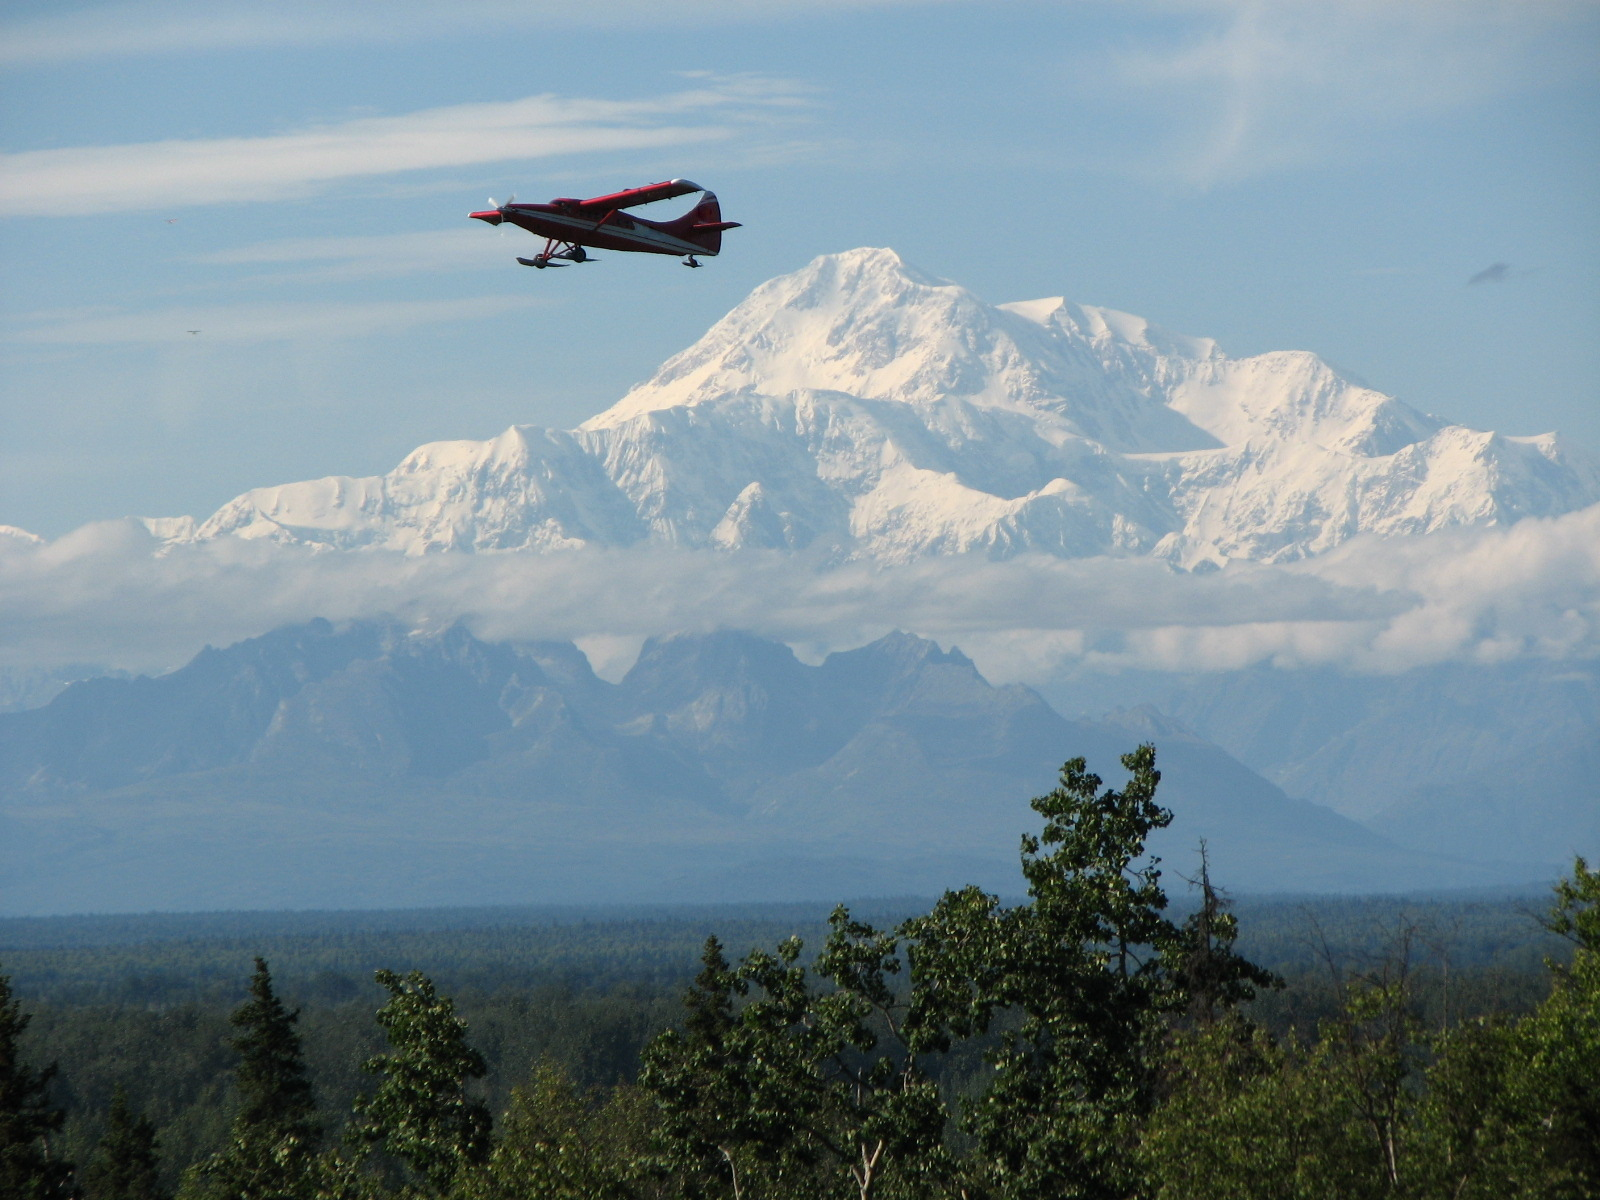 sightseeing tour | Mount McKinley